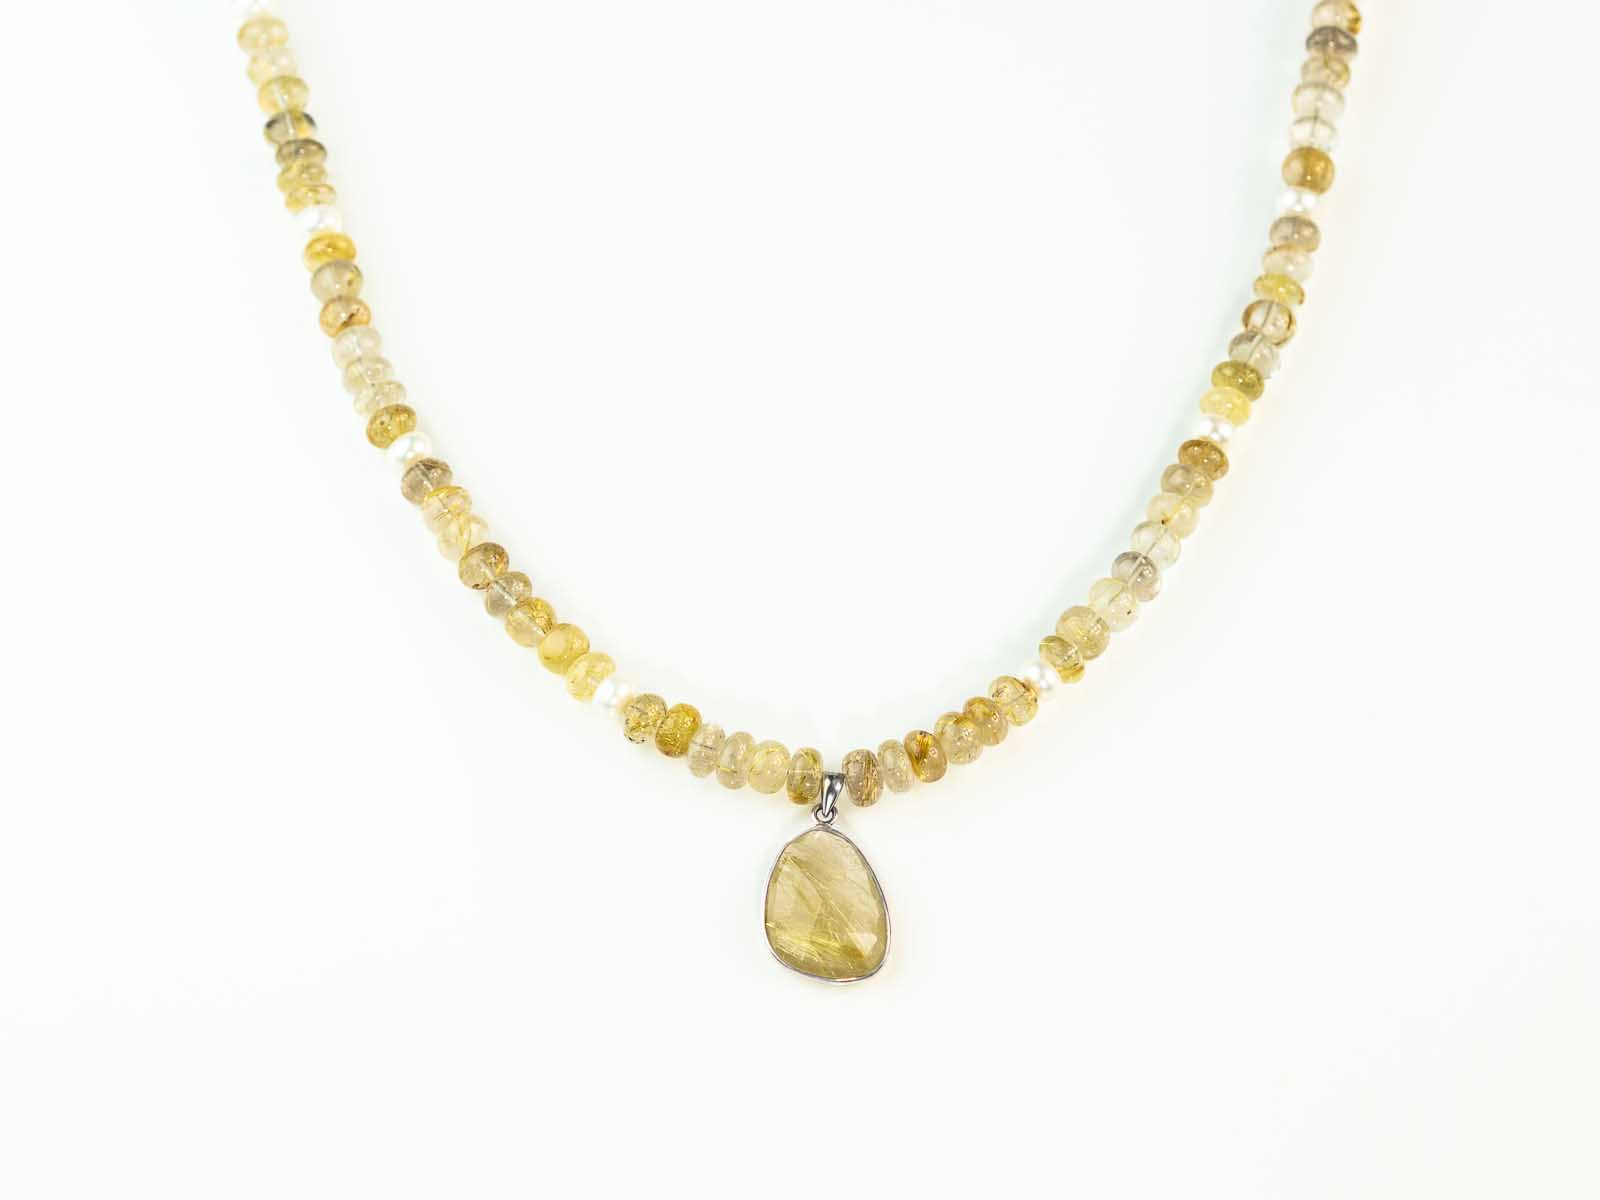 Golden rutilated quartz venus hair necklace sterling for Golden rutilated quartz jewelry